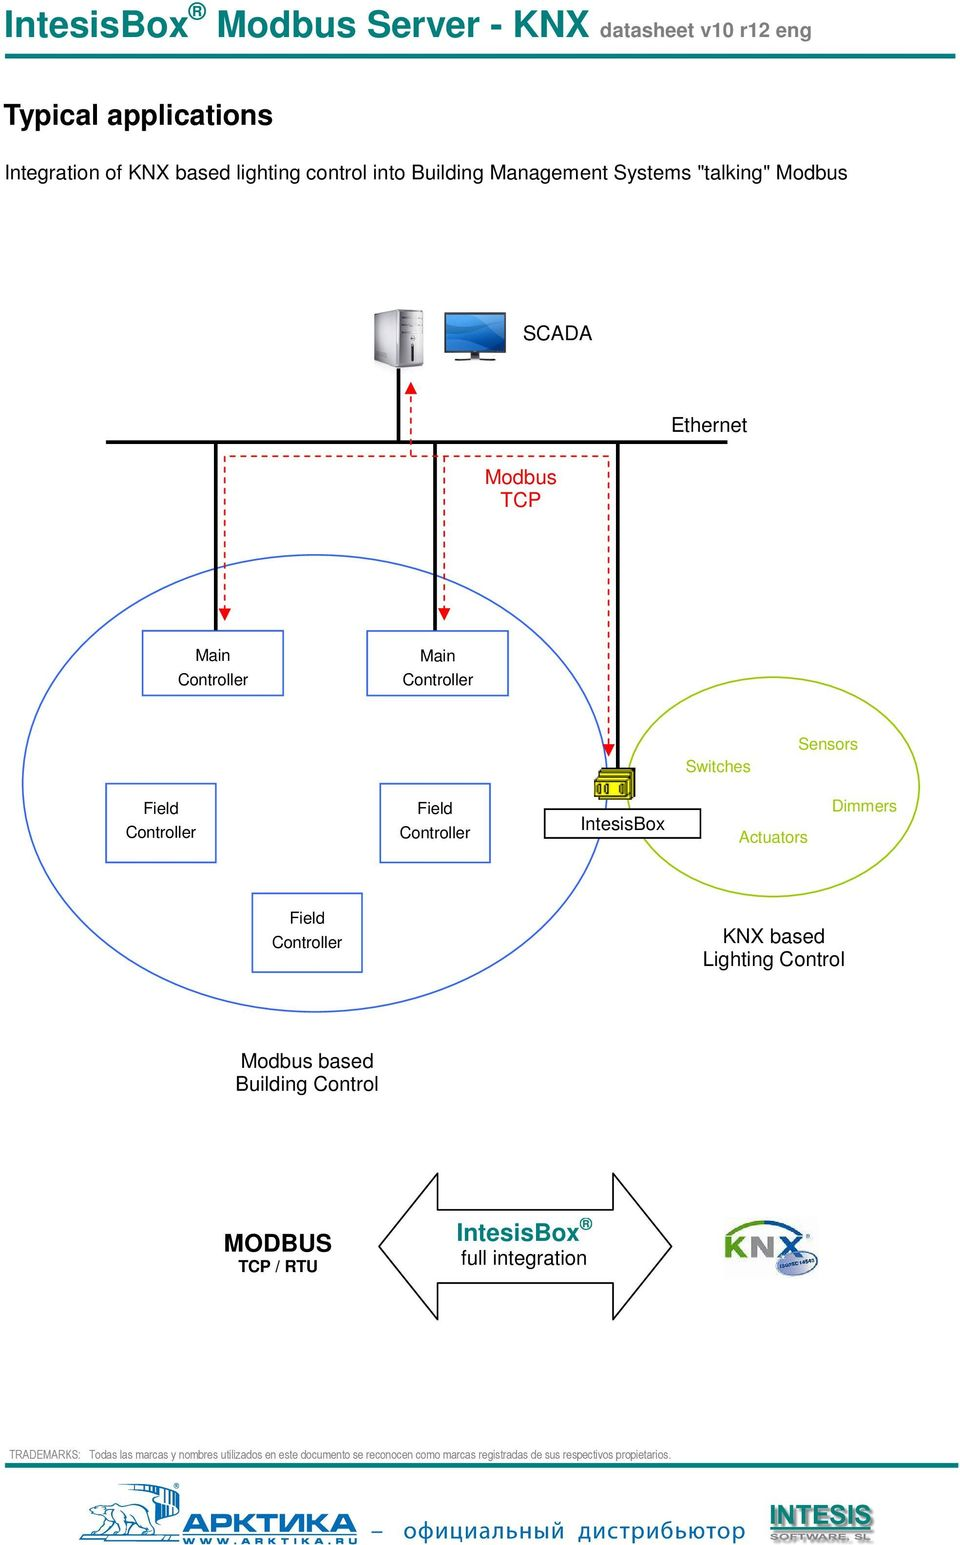 Modbus Server Knx Gateway For Integration Of Equipment Into Lighting Wiring Diagram Switches Sensors Field Intesisbox Actuators Dimmers Based